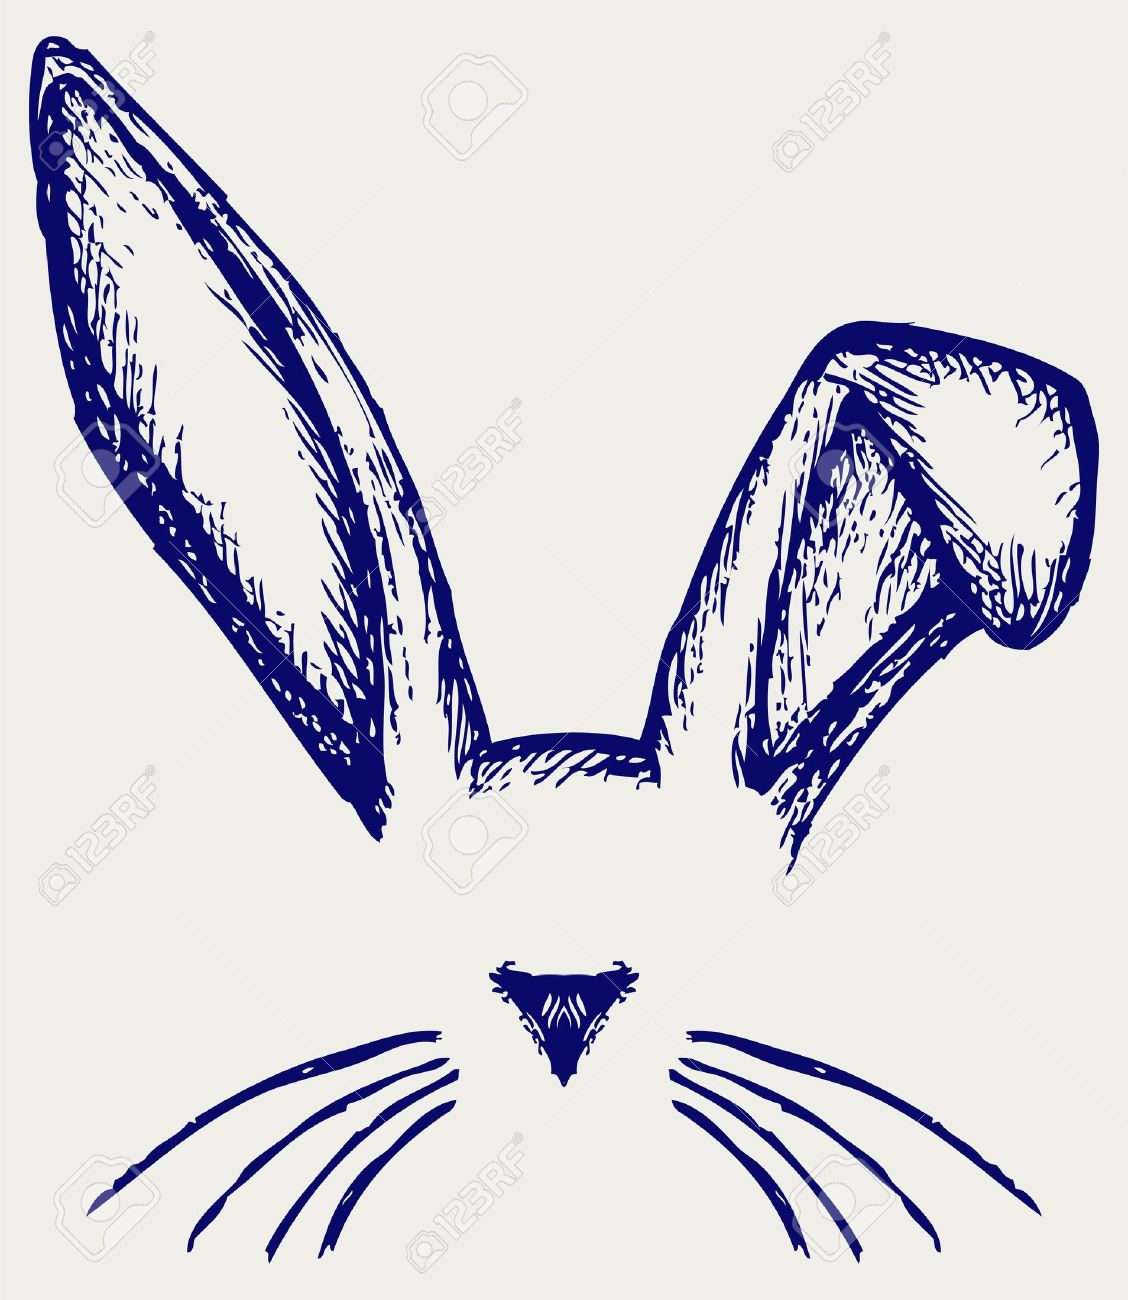 rabbit ears stock photos royalty free rabbit ears images and pictures